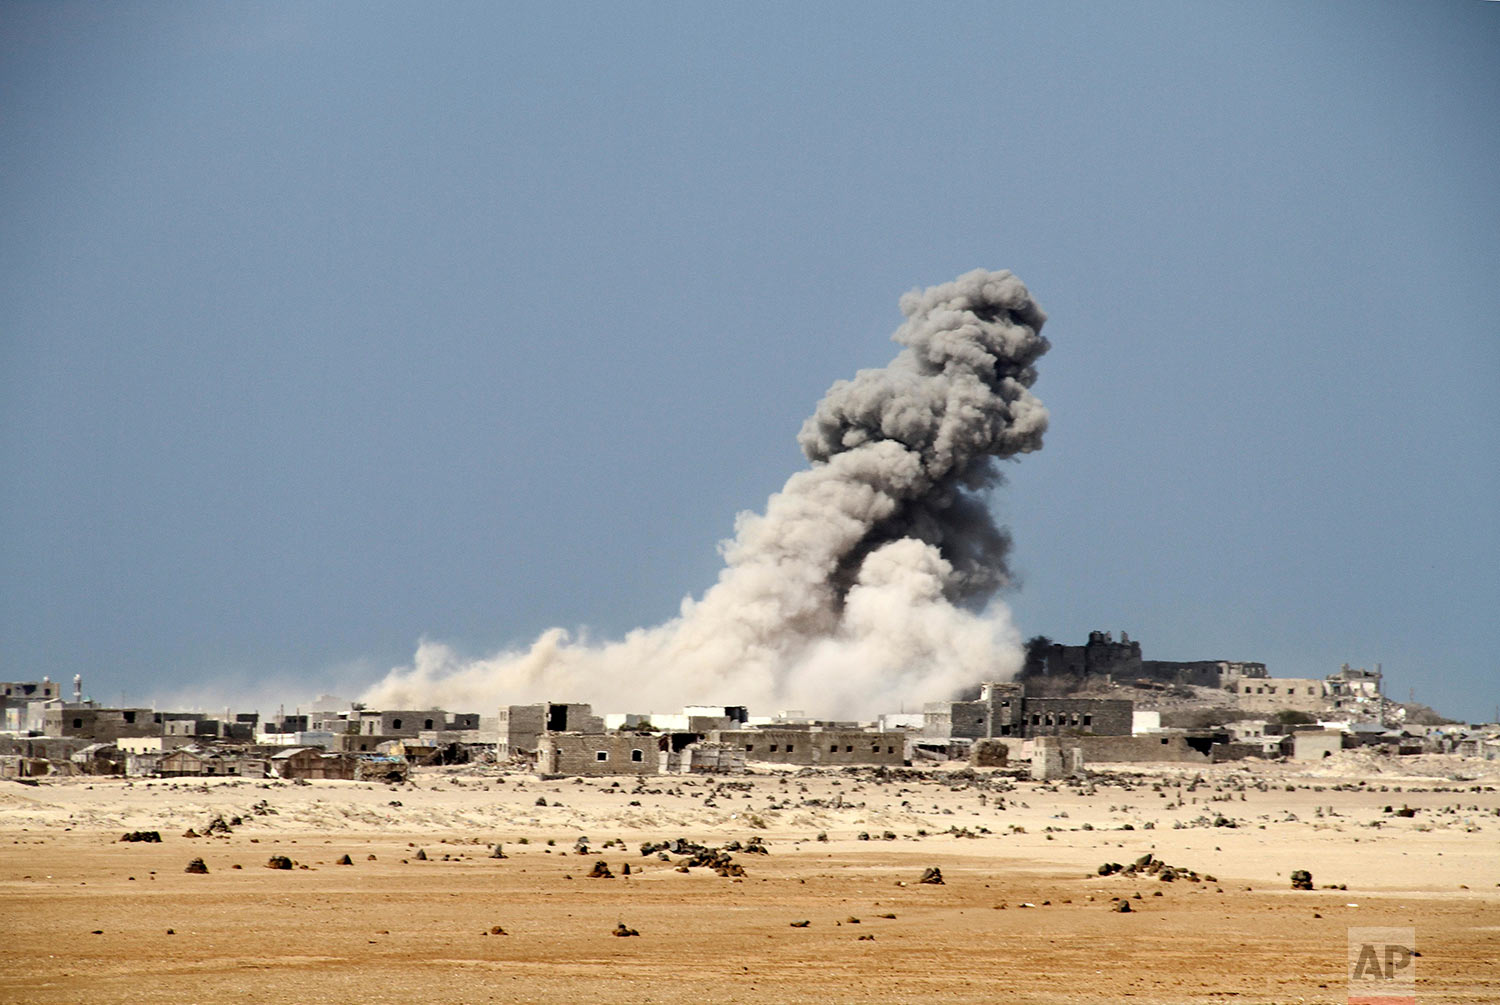 An explosion raises a cloud as coalition-backed fighters advance on the Red Sea port town of Mocha. (AP Photo)